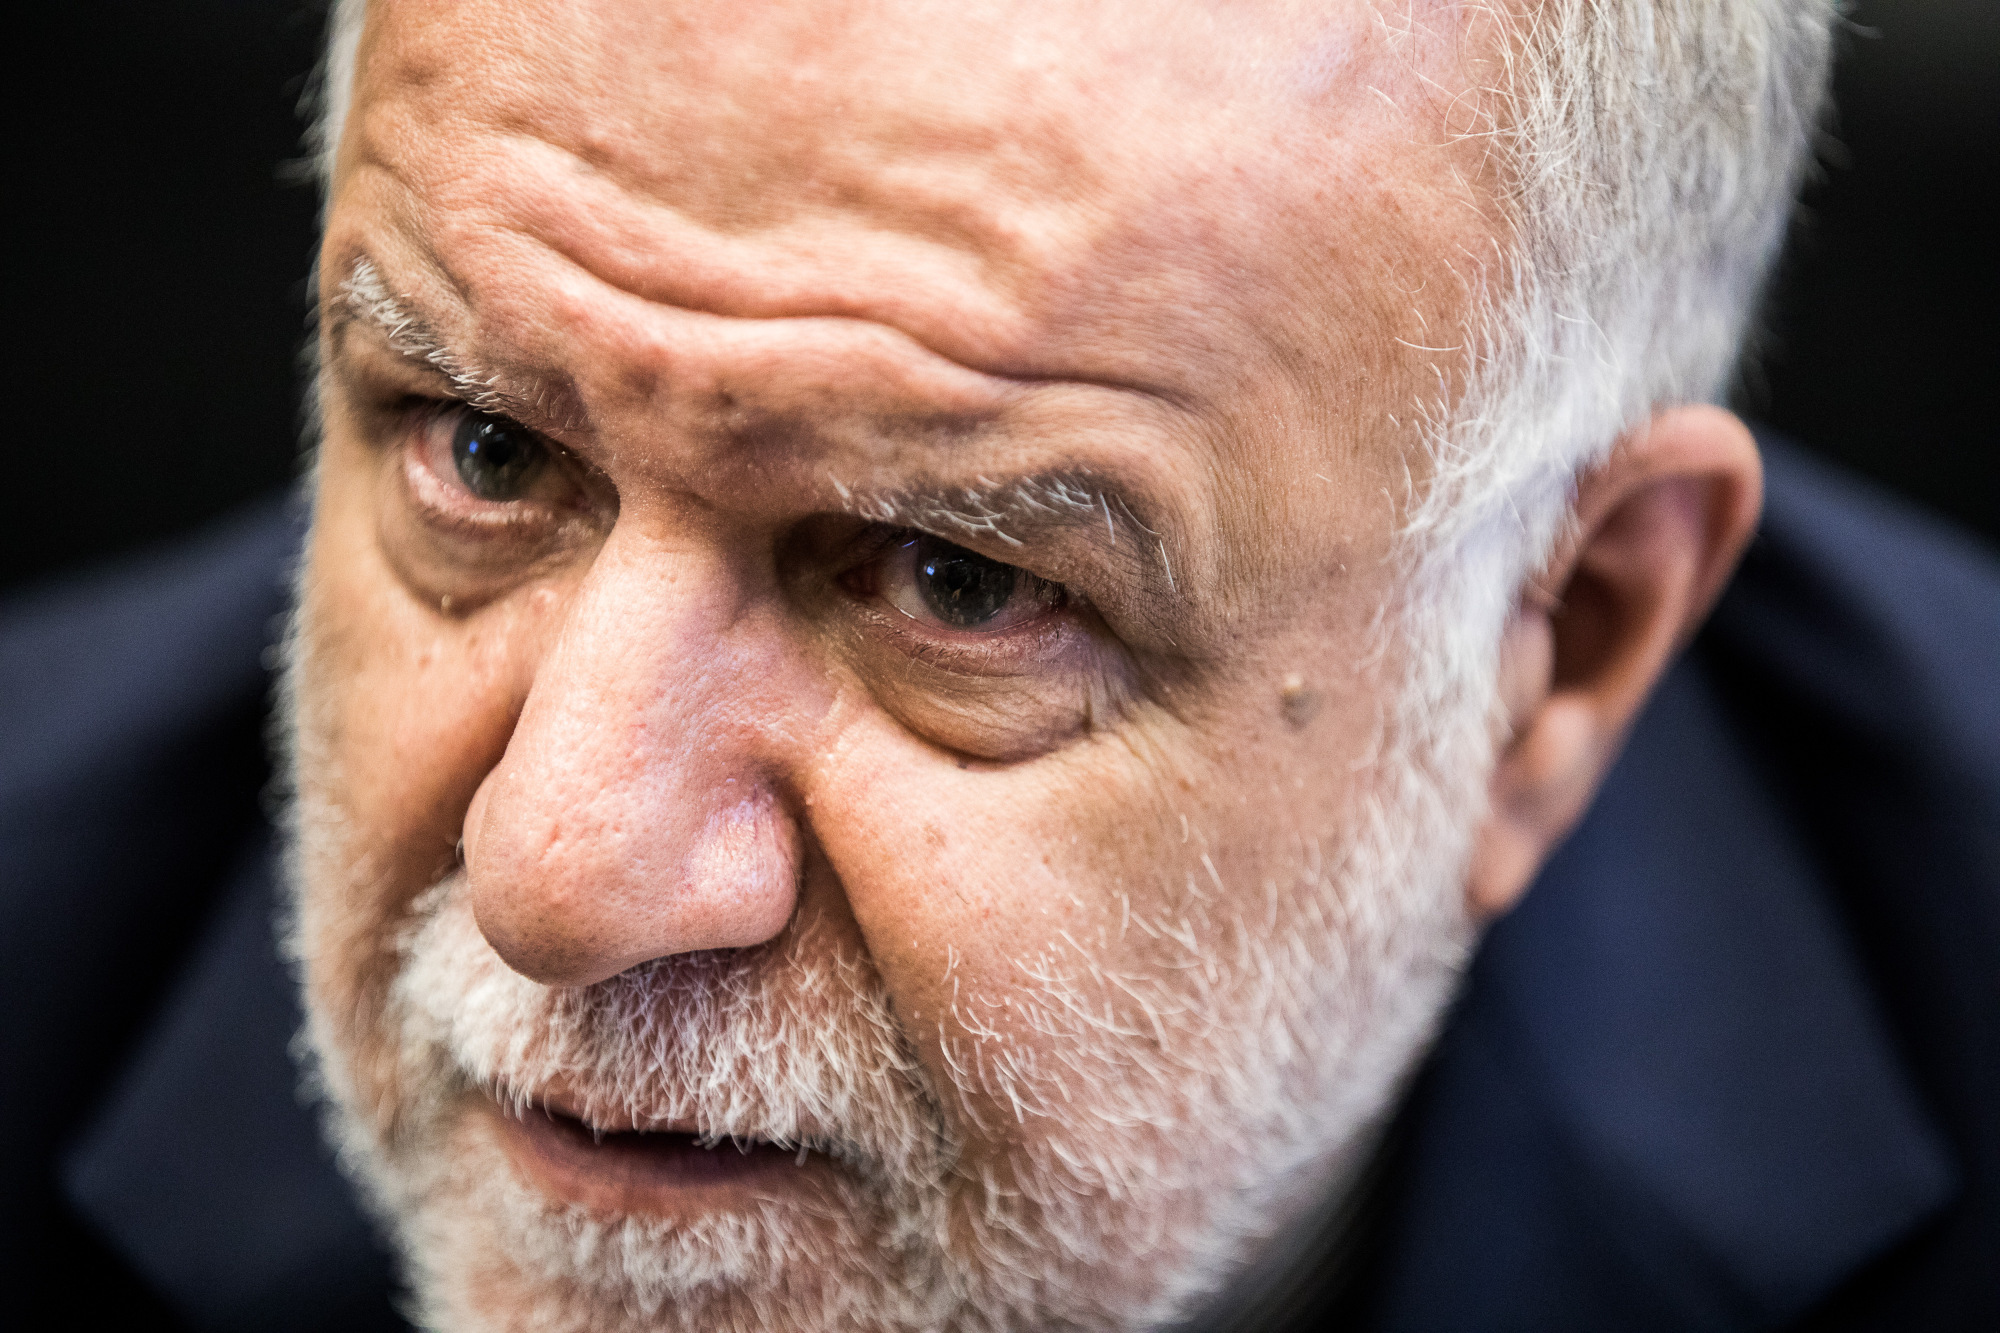 Bijan Namdar Zanganeh, Iran's petroleum minister, speaks to journalists ahead of the 173rd Organization of Petroleum Exporting Countries (OPEC) meeting in Vienna, Austria, on Thursday, Nov. 30, 2017. Photographer: Akos Stiller/Bloomberg